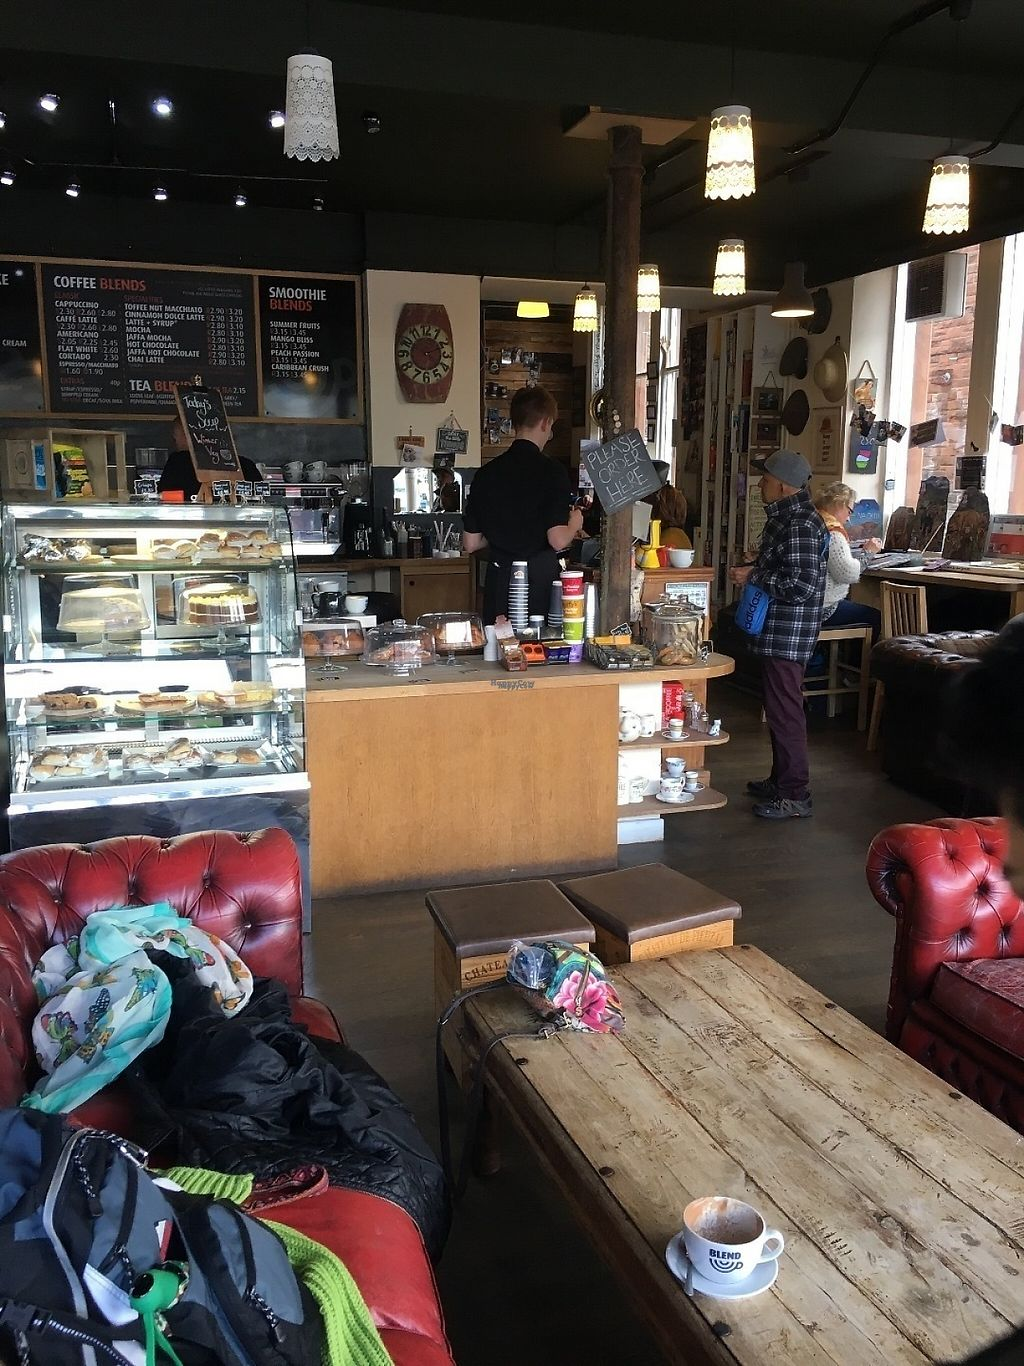 """Photo of Blend Coffee Lounge  by <a href=""""/members/profile/radiocaz"""">radiocaz</a> <br/>Lovely vibes <br/> April 17, 2017  - <a href='/contact/abuse/image/90481/249303'>Report</a>"""